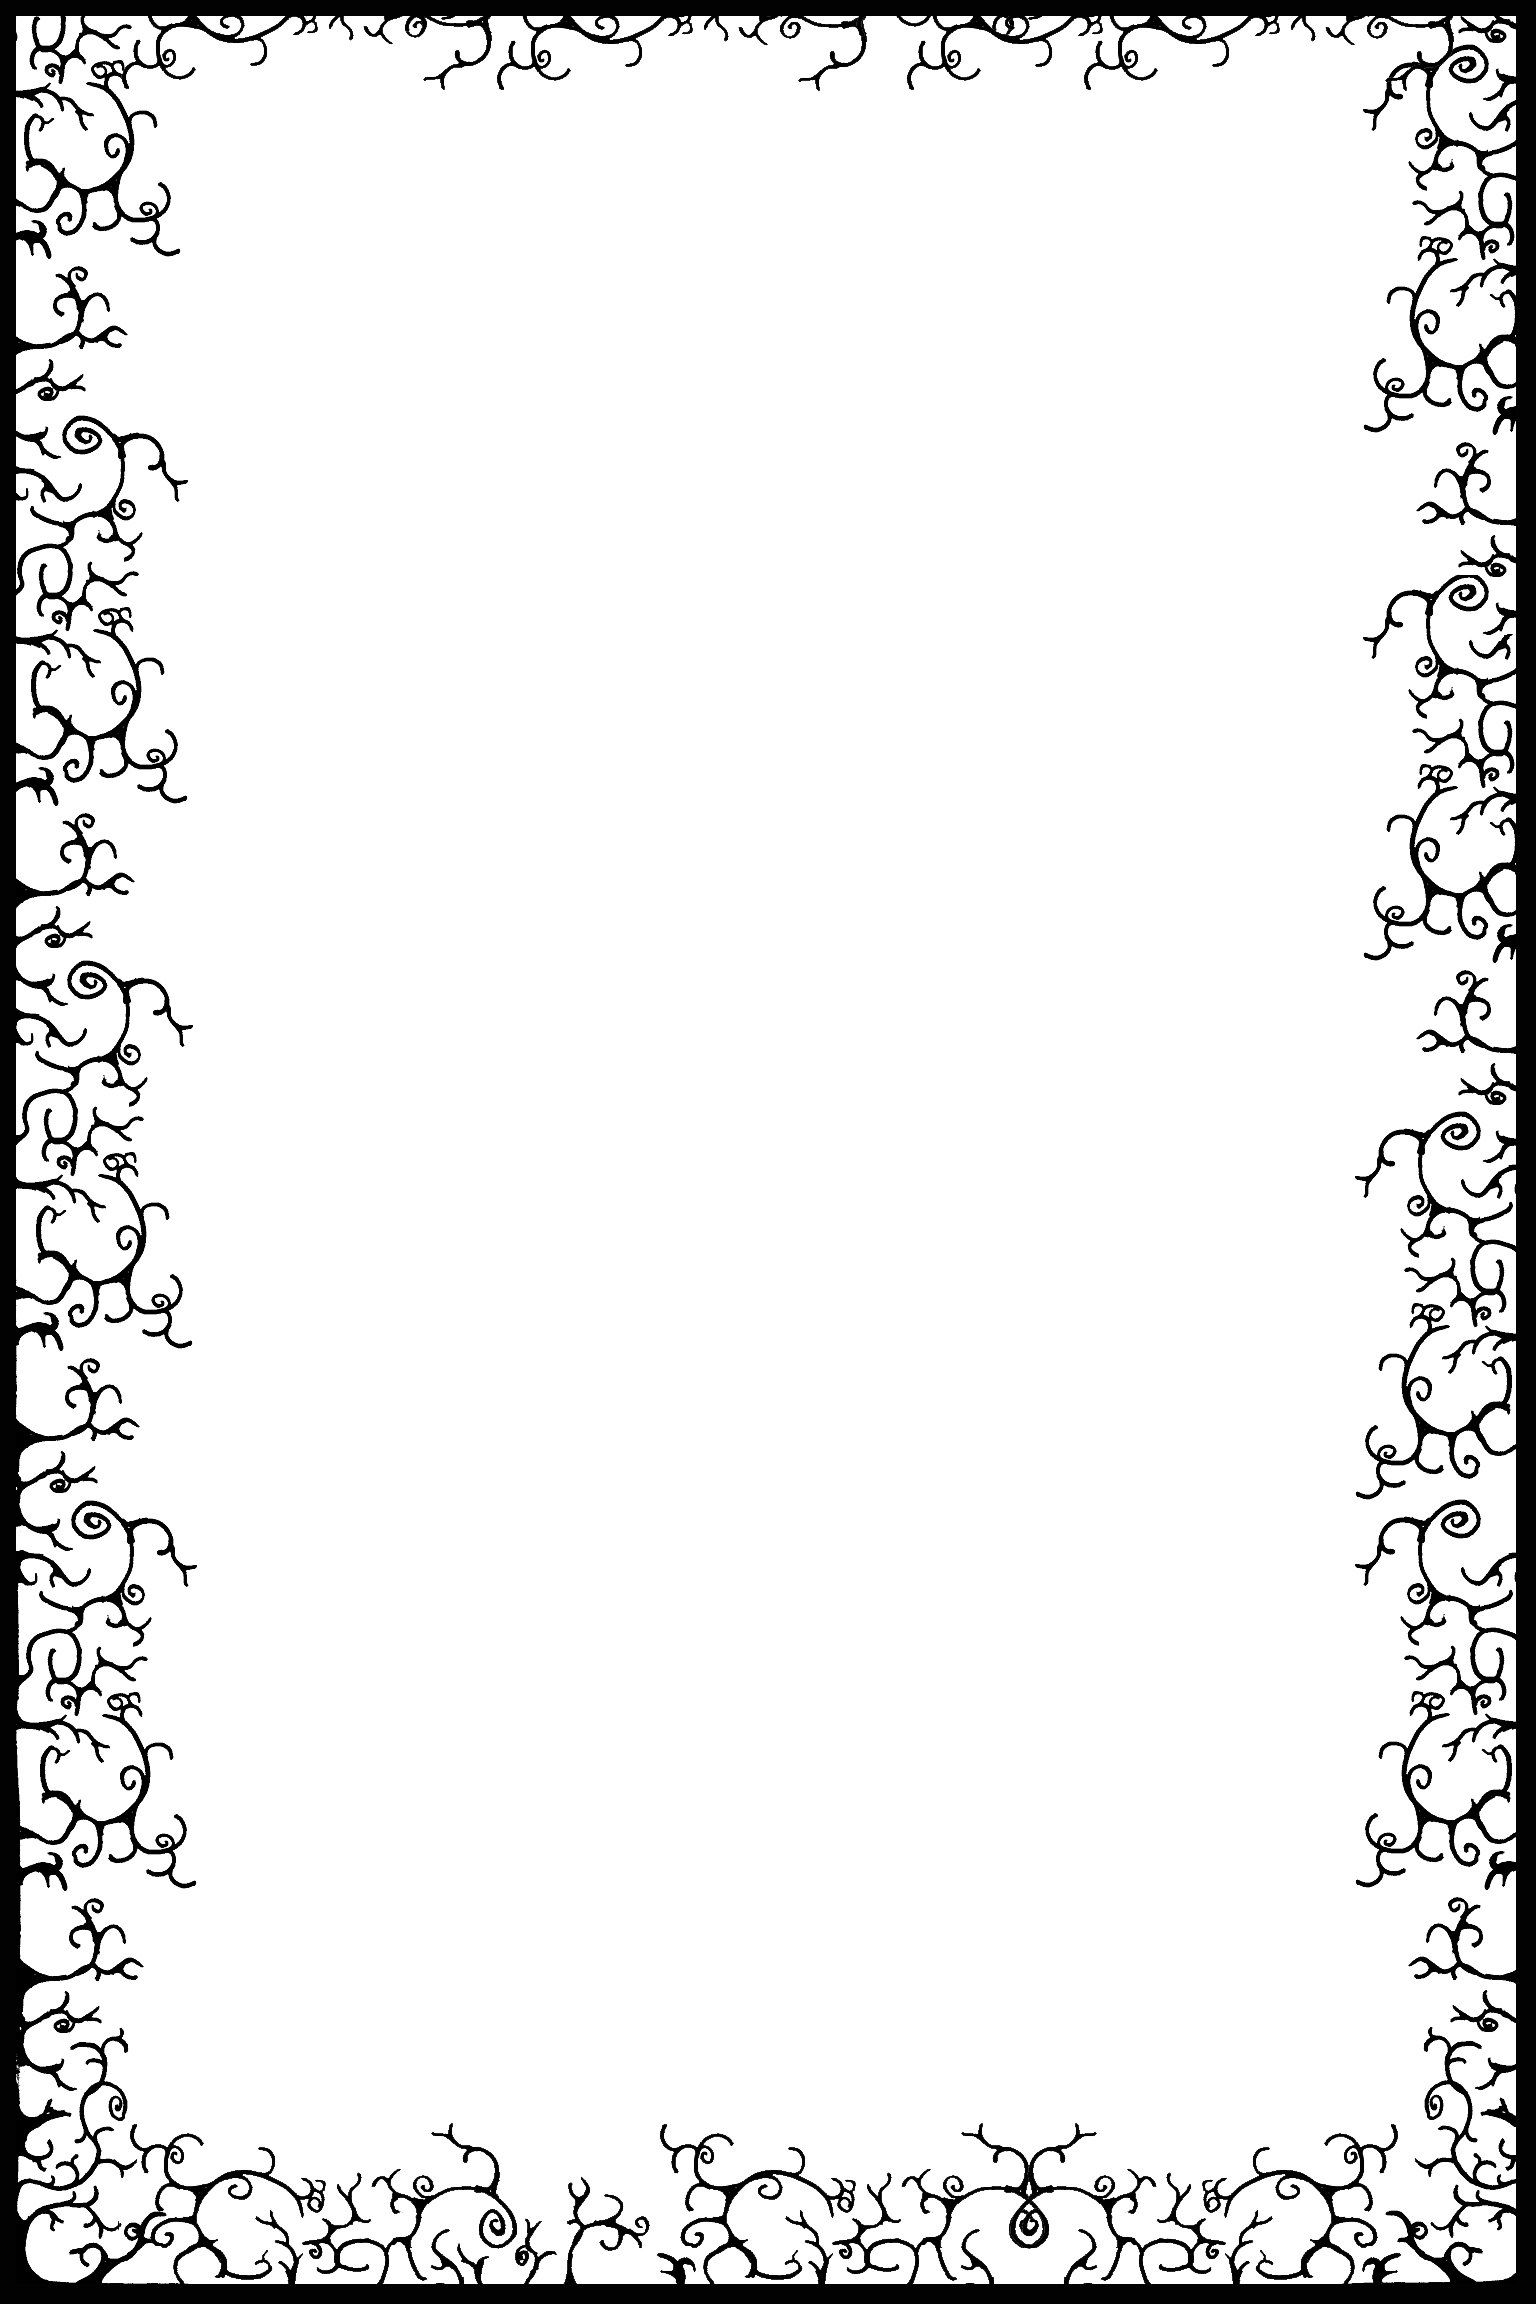 Free Cool Border, Download Free Clip Art, Free Clip Art on.